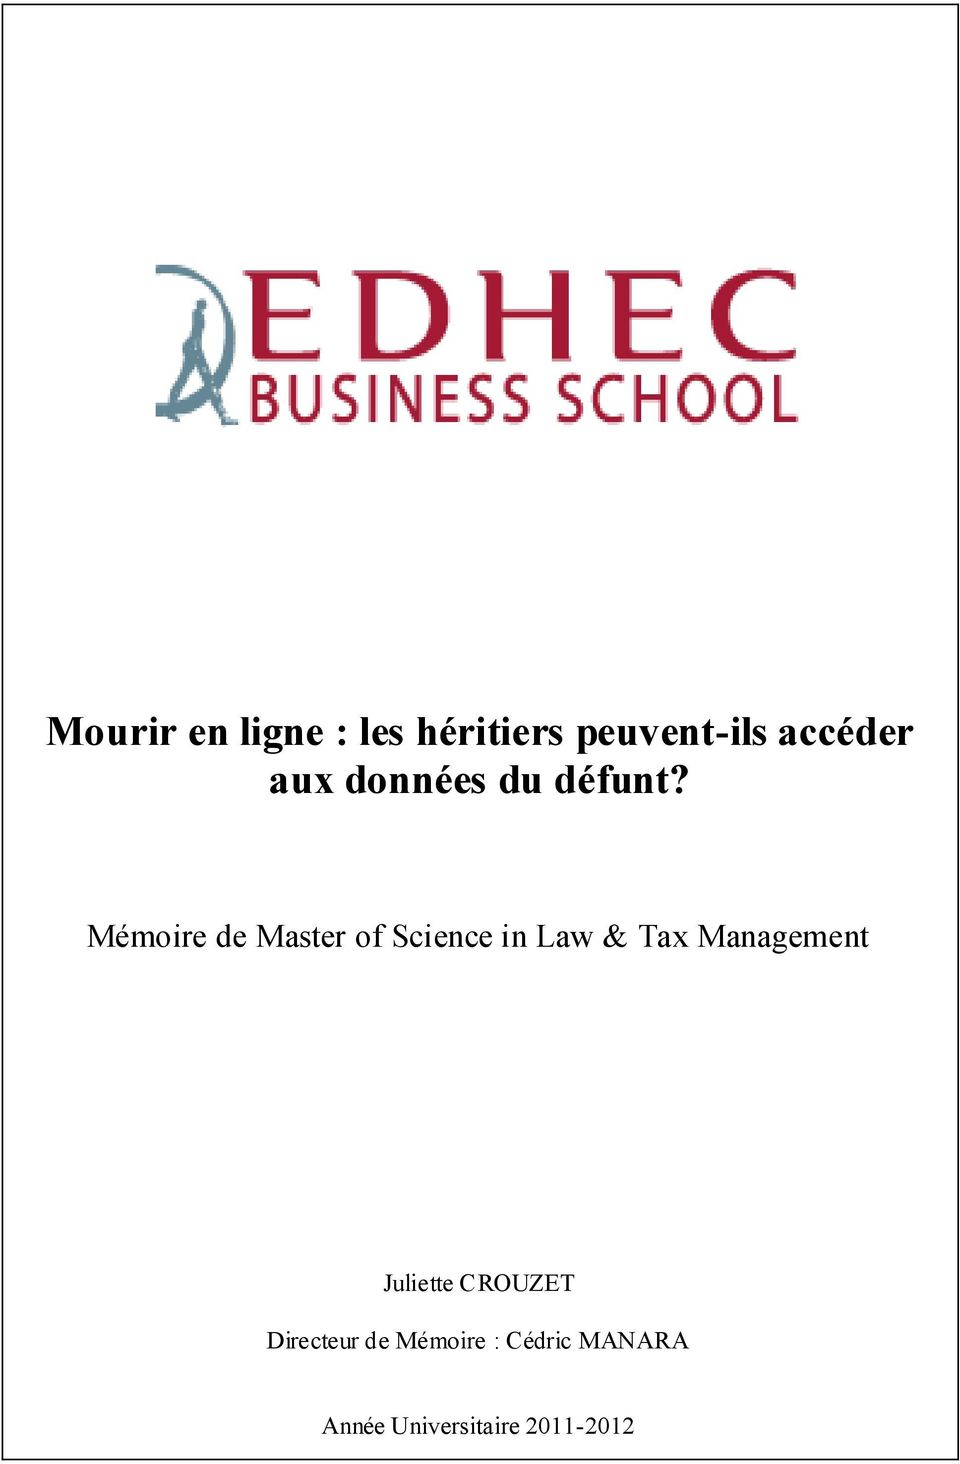 Mémoire de Master of Science in Law & Tax Management